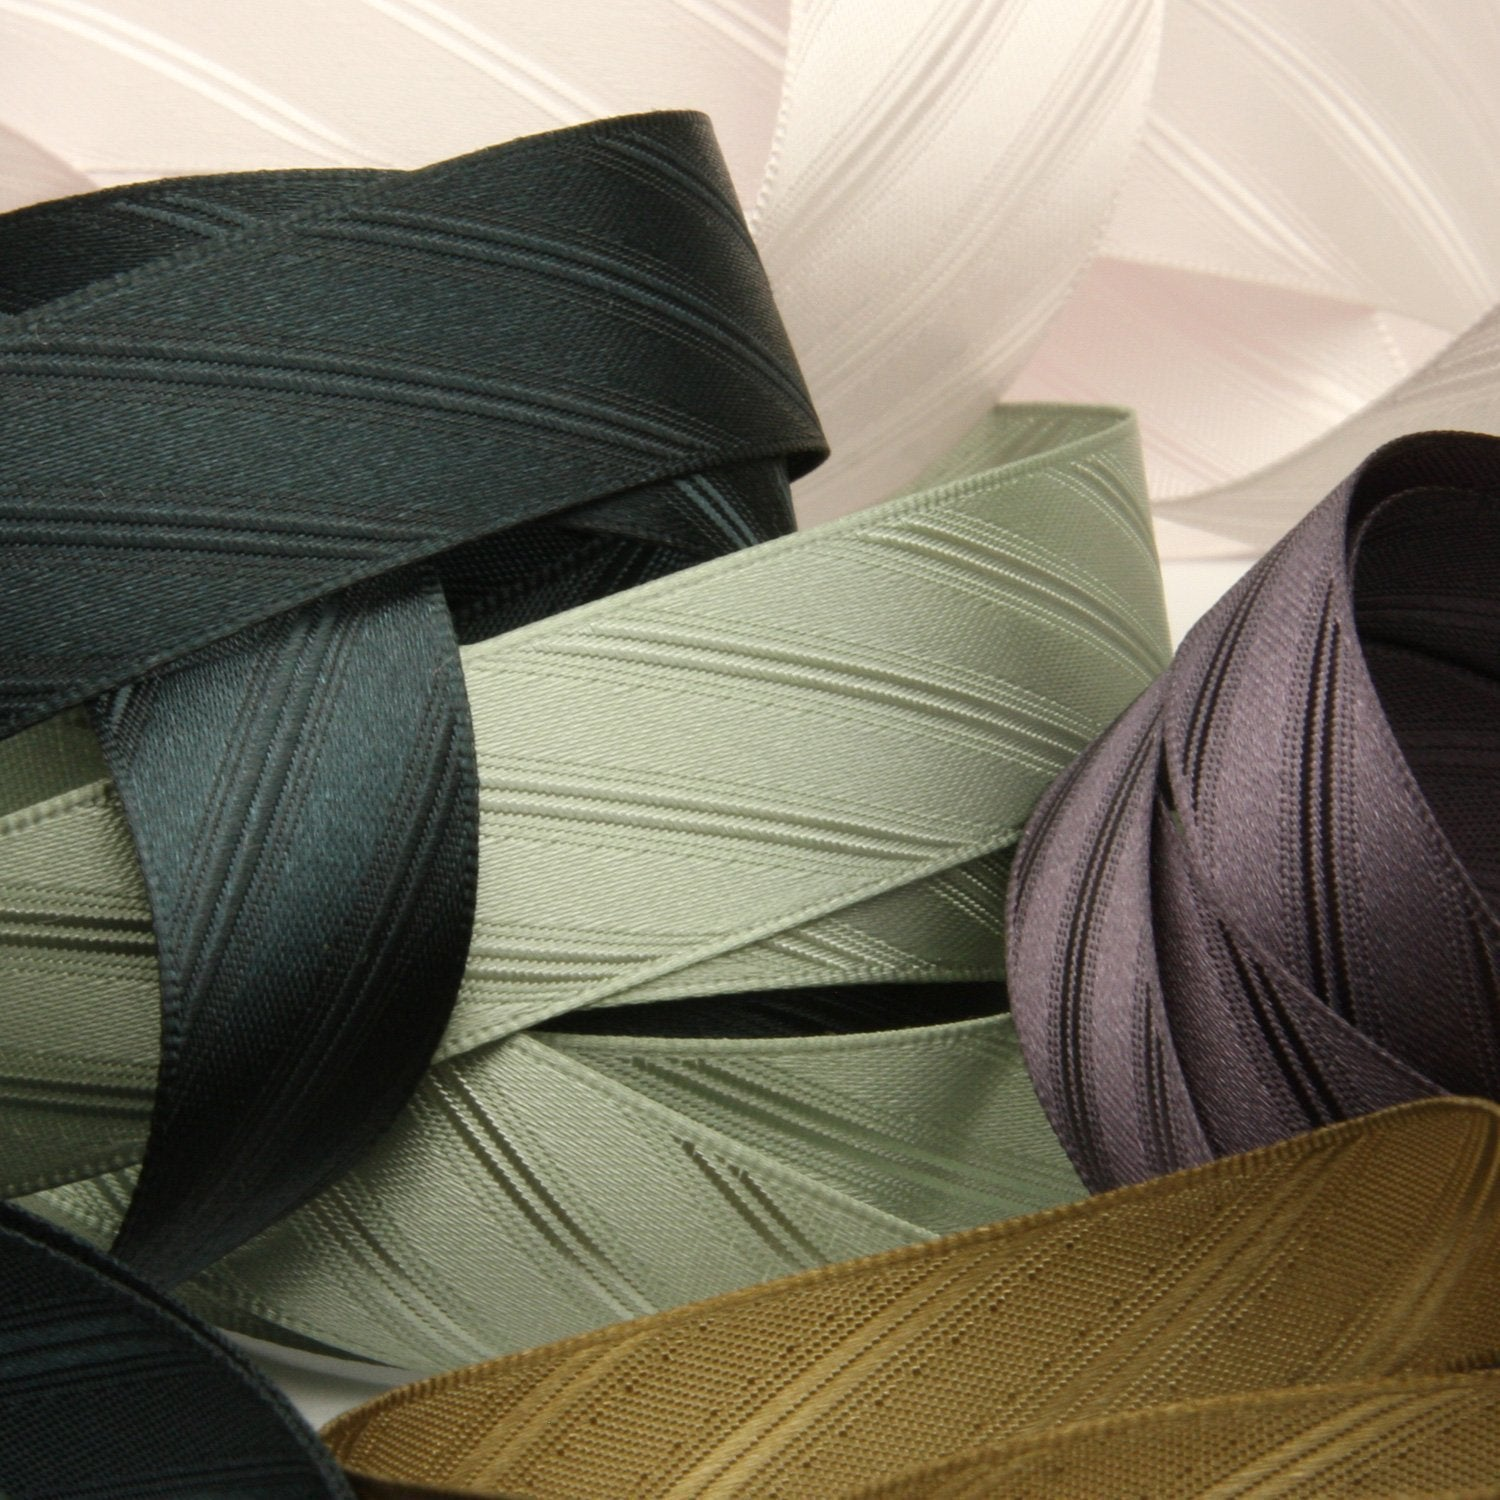 FUJIYAMA RIBBON [Wholesale] Twill Satin Ribbon 25mm 30 Meters Roll